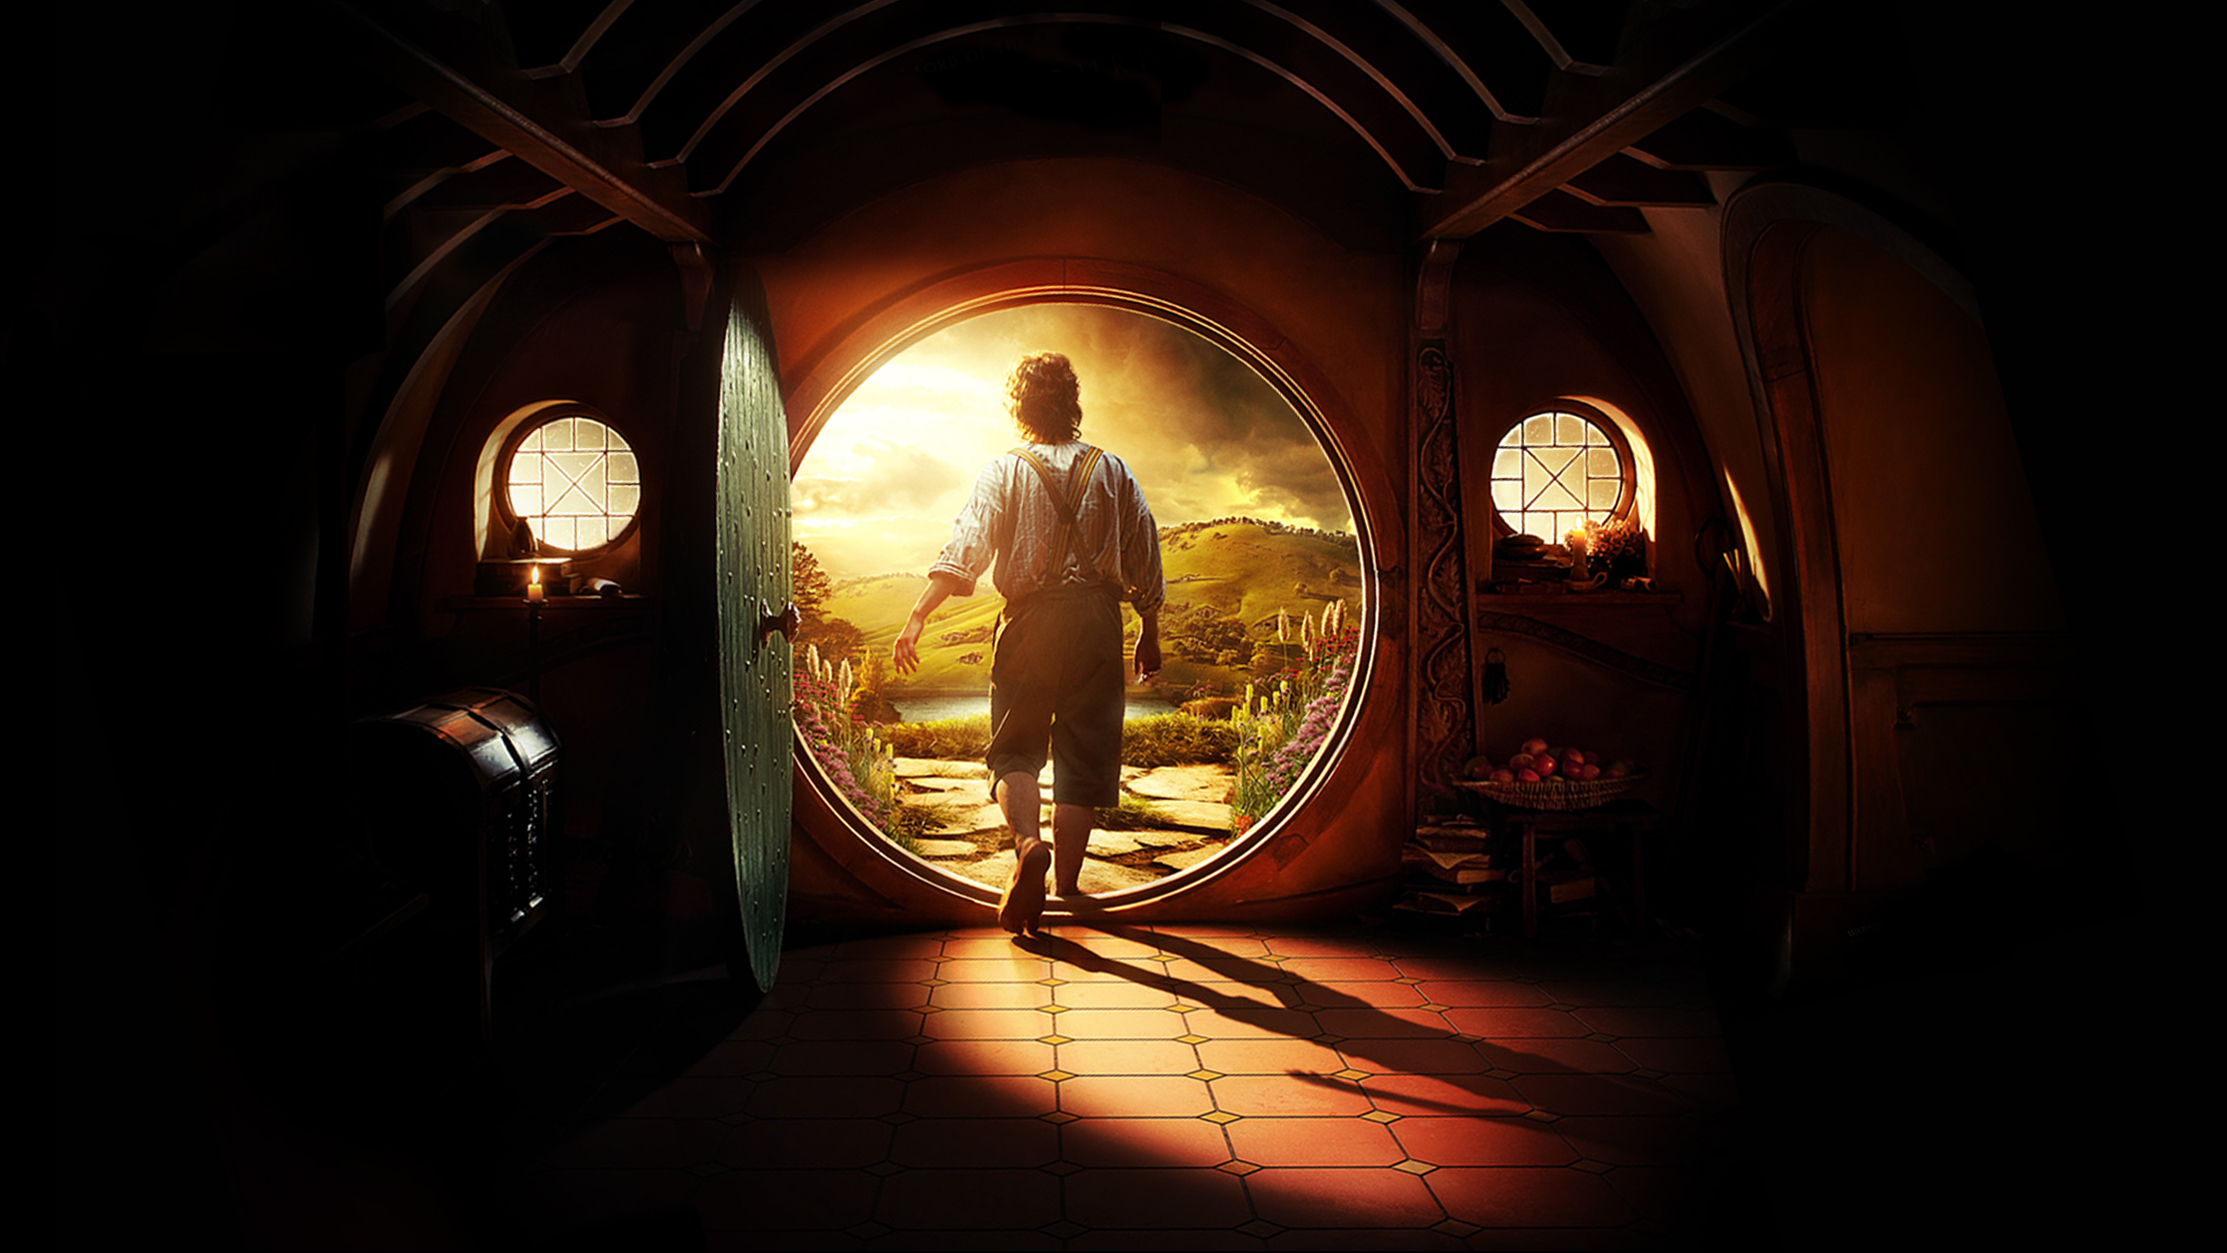 The Hobbit HD Wallpapers Download 2227x1253